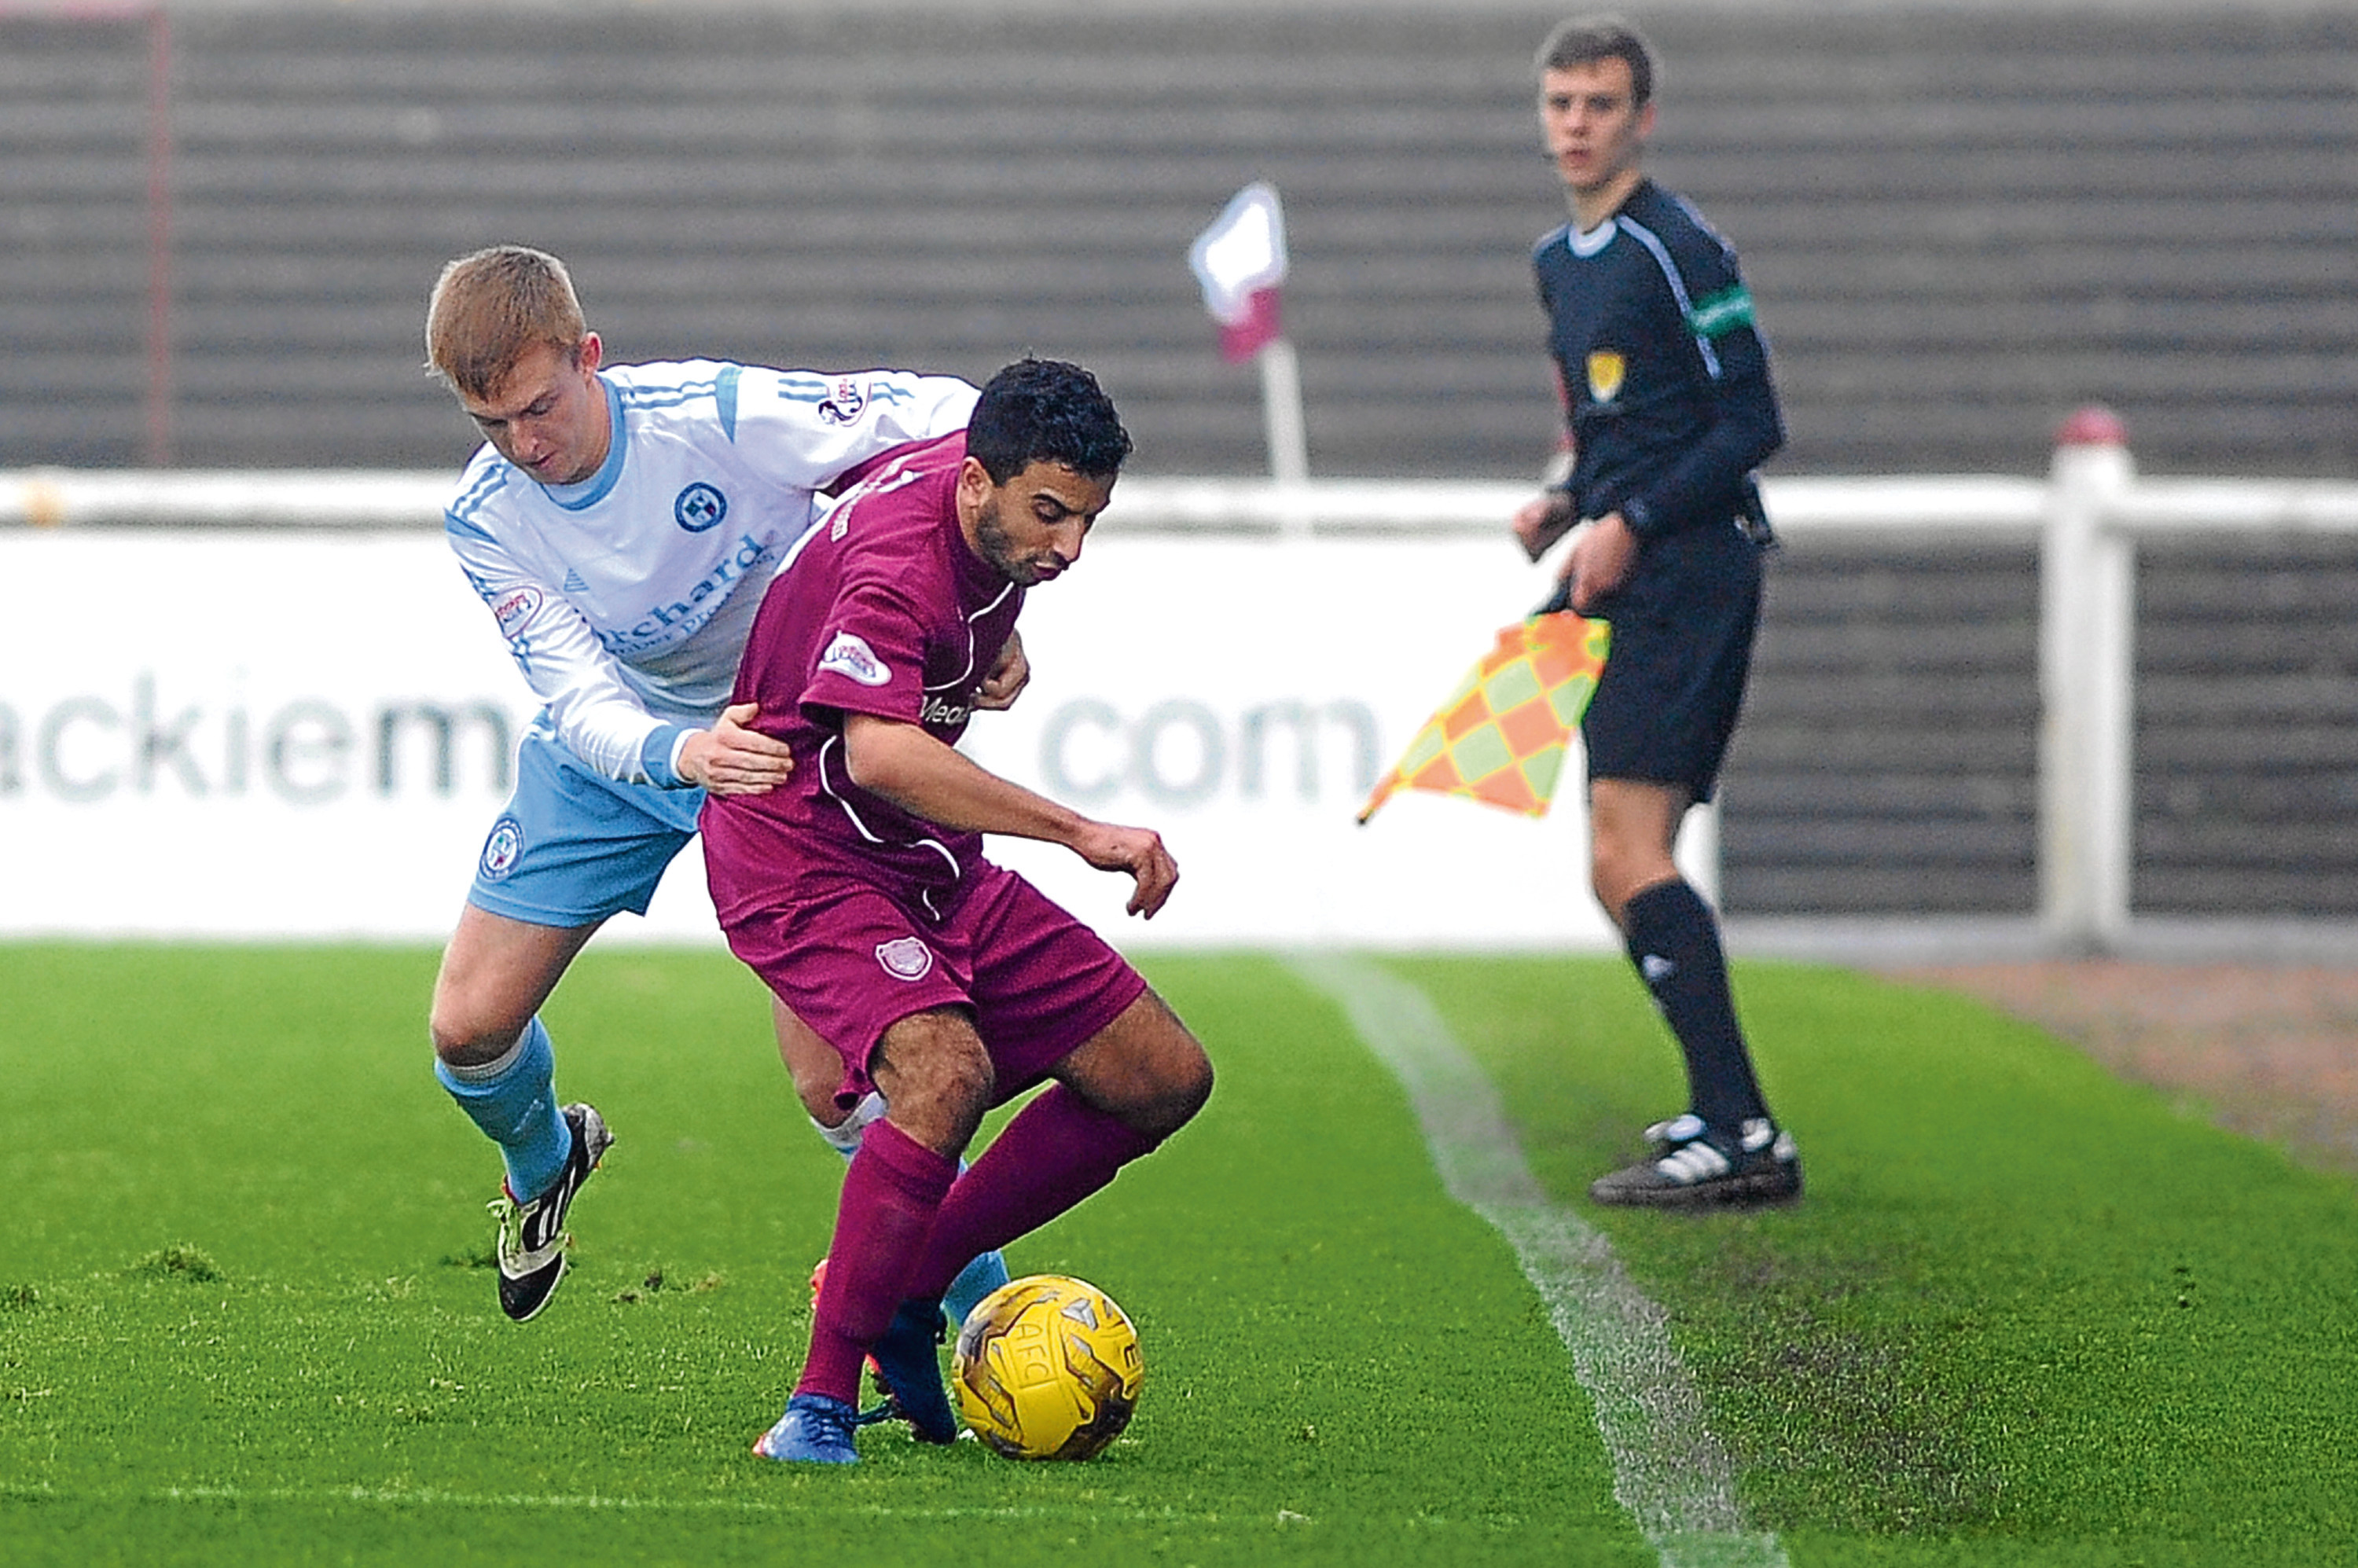 Michael Kennedy (Forfar) and Omar Kader (Arbroath) tangle in a tussle between the clubs earlier in the season.